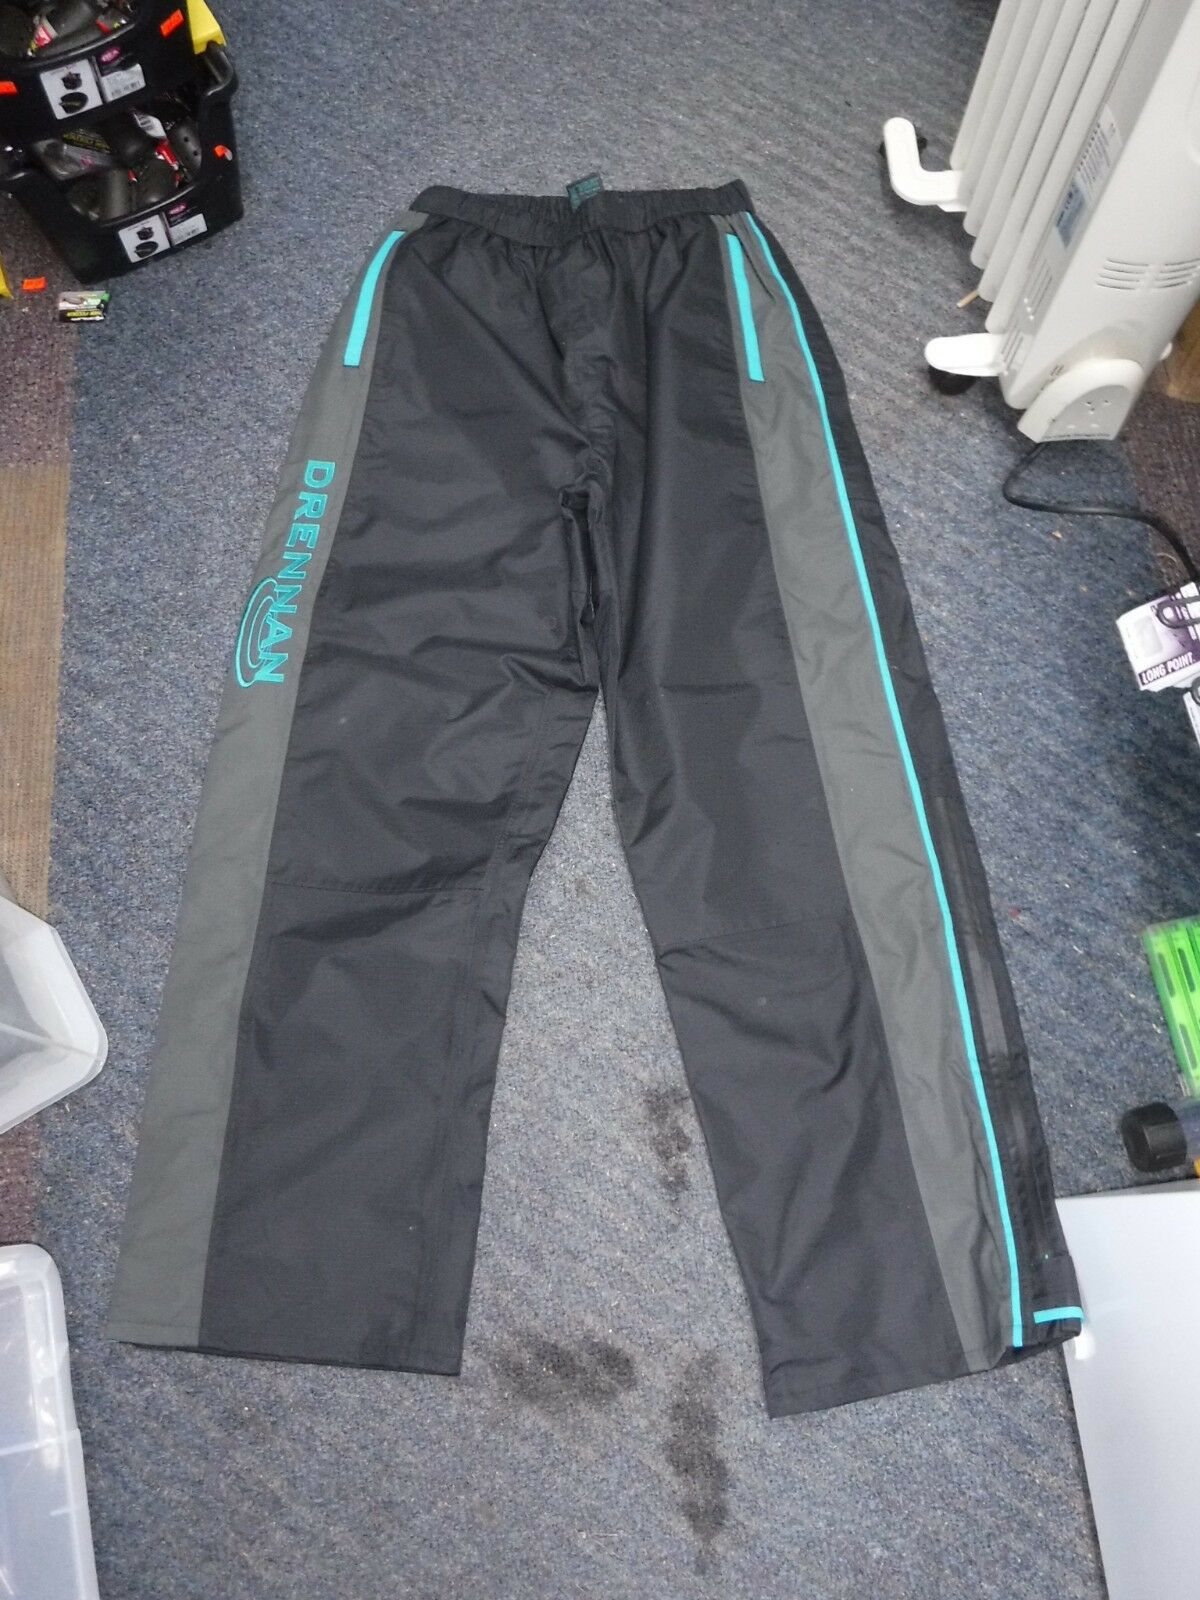 Drennan  Match Waterproof Trousers sz small  a lot of surprises